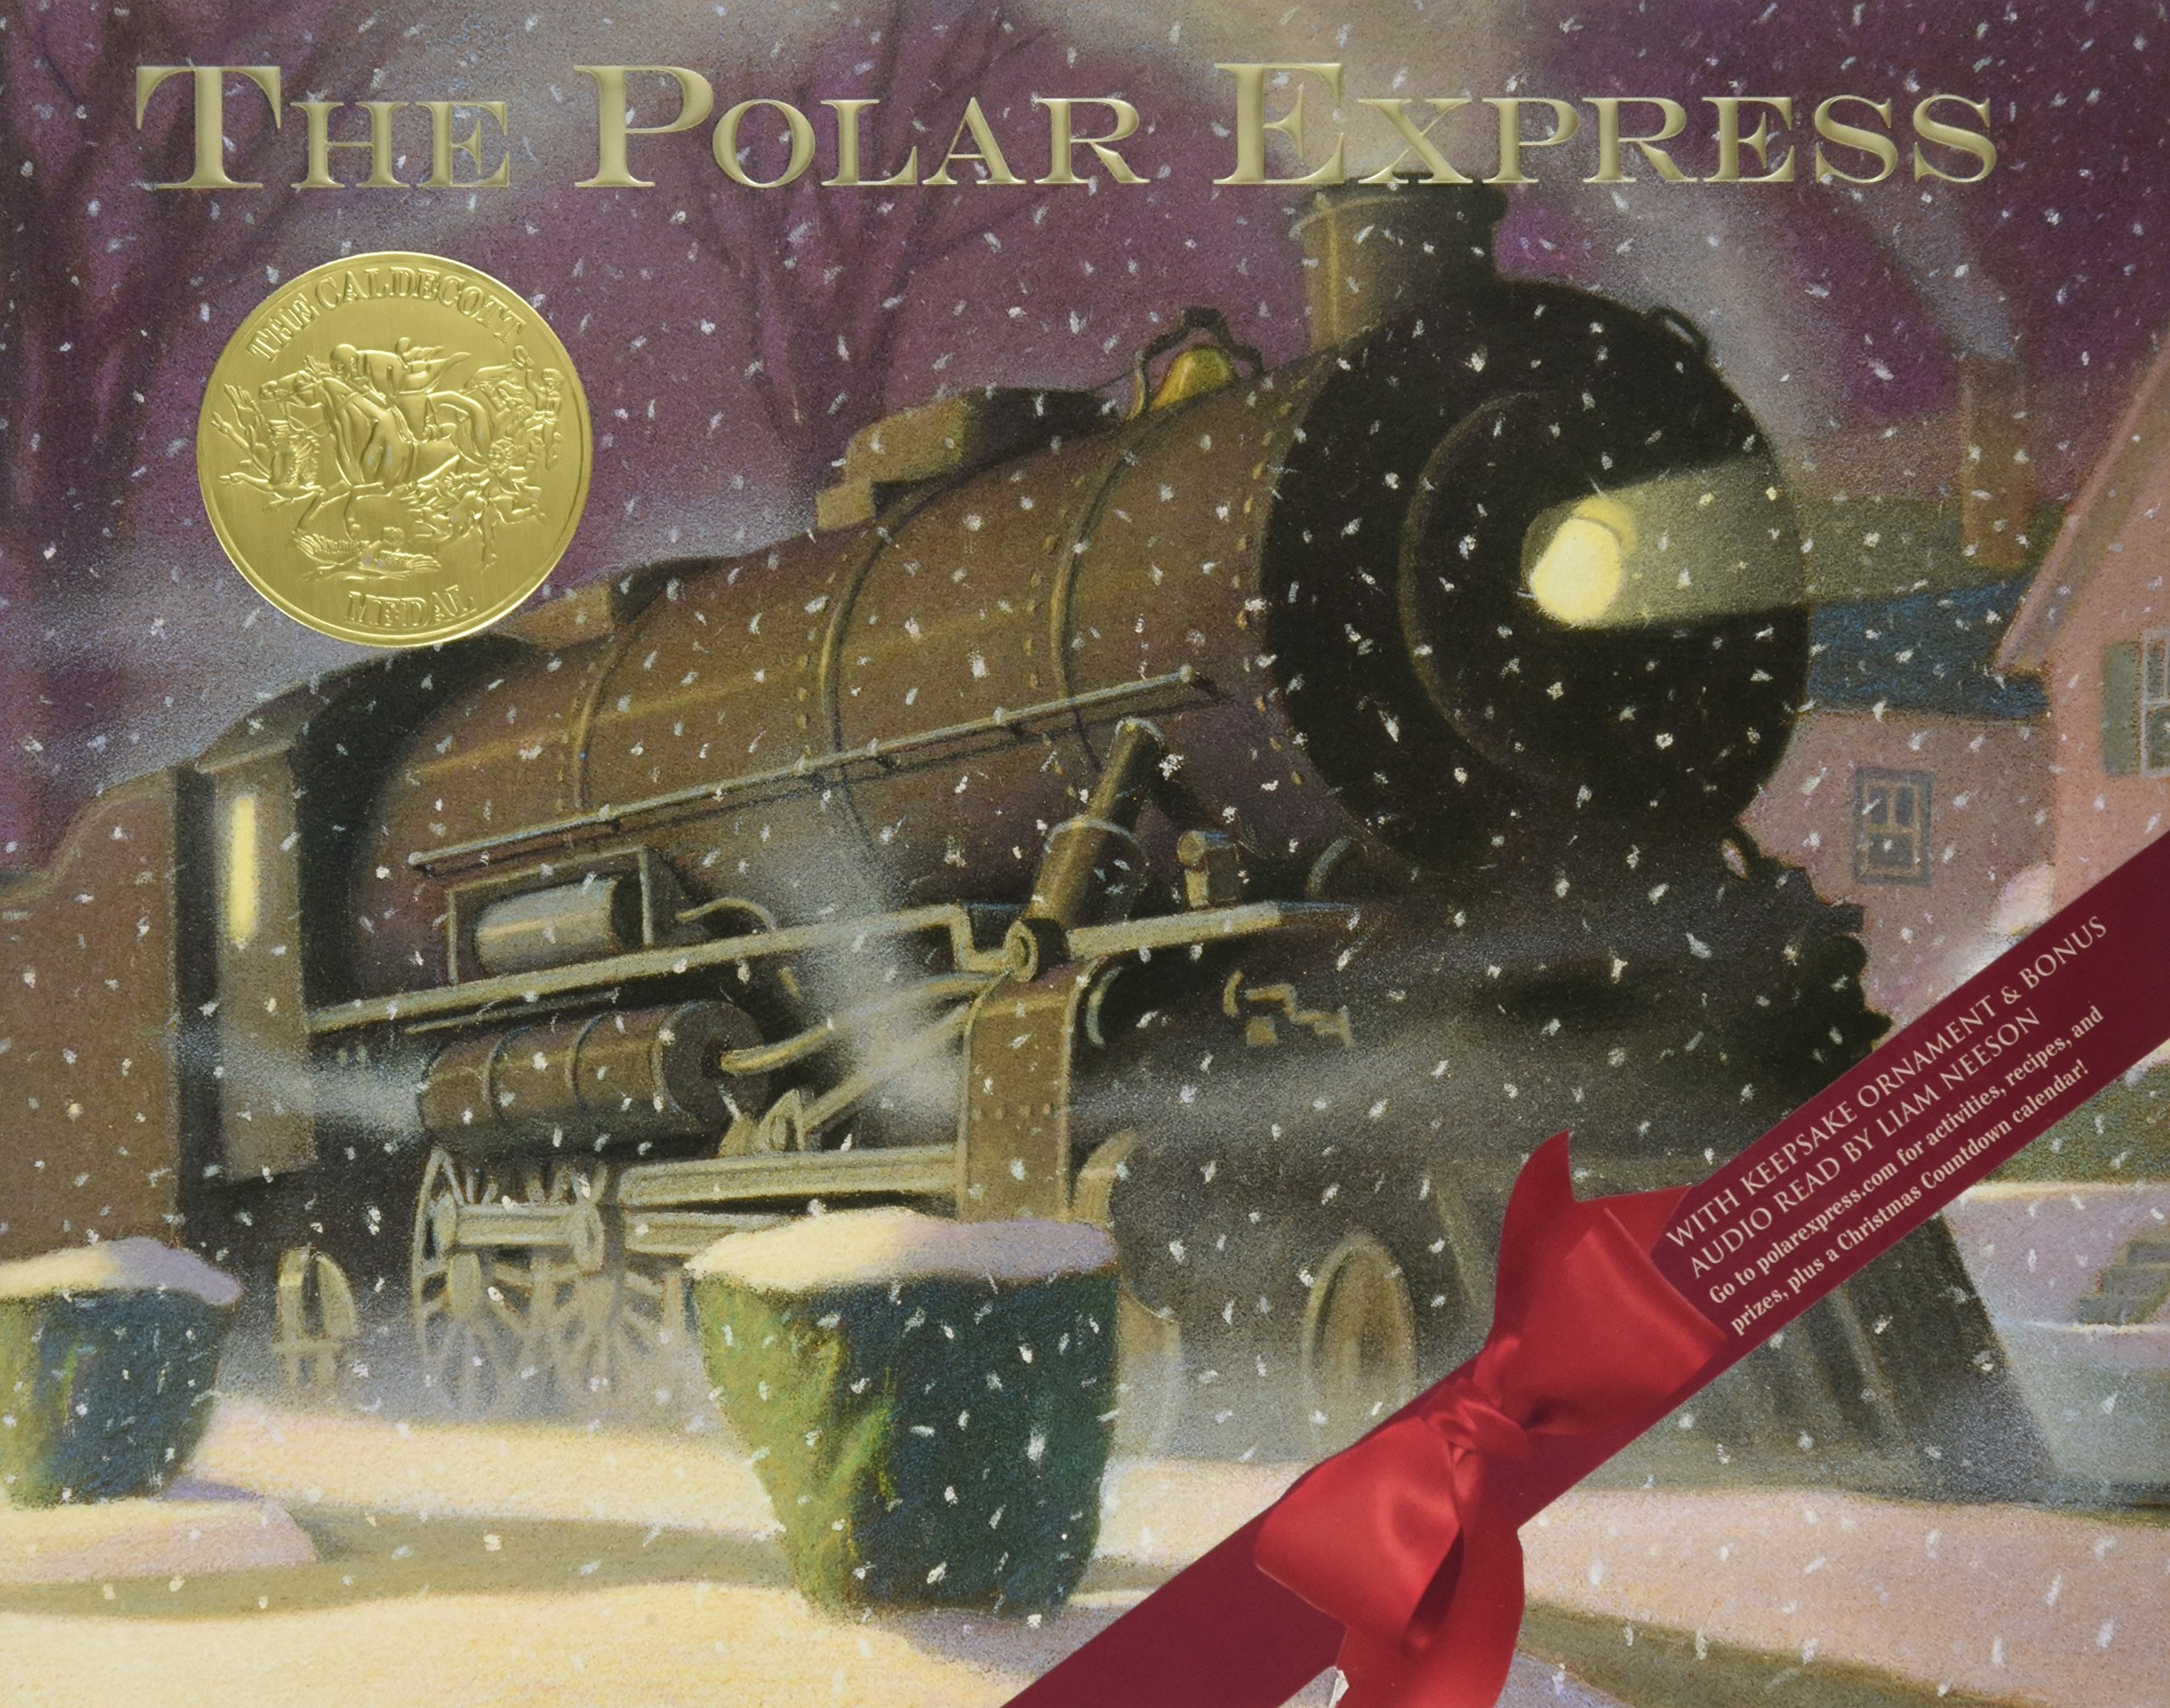 Polar Express 30th anniversary edition